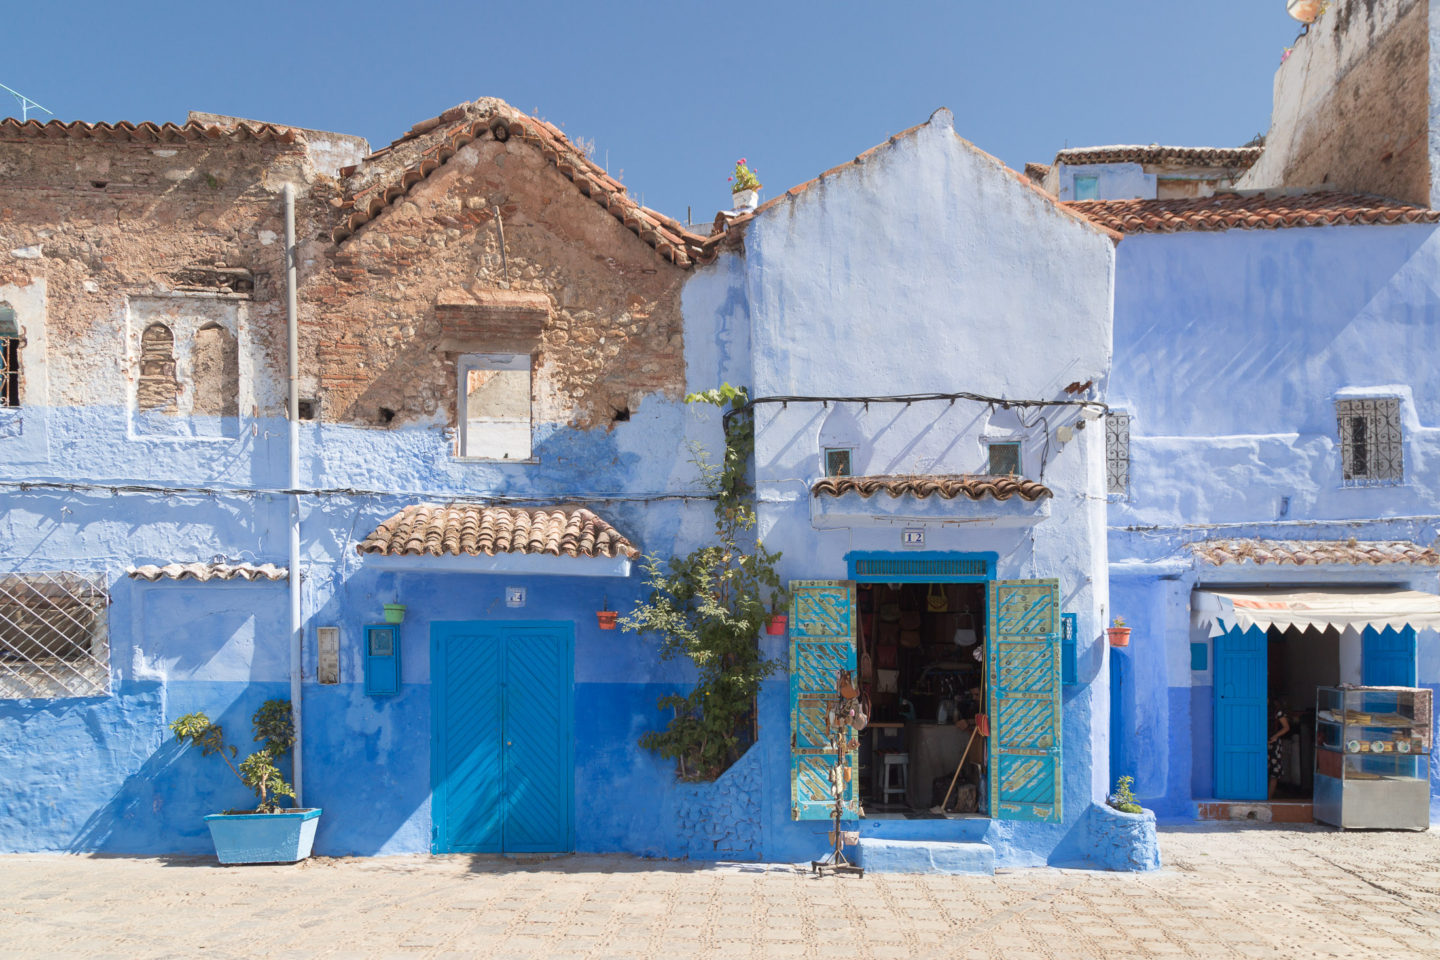 blue facades of buildings in chefchoauen morocco